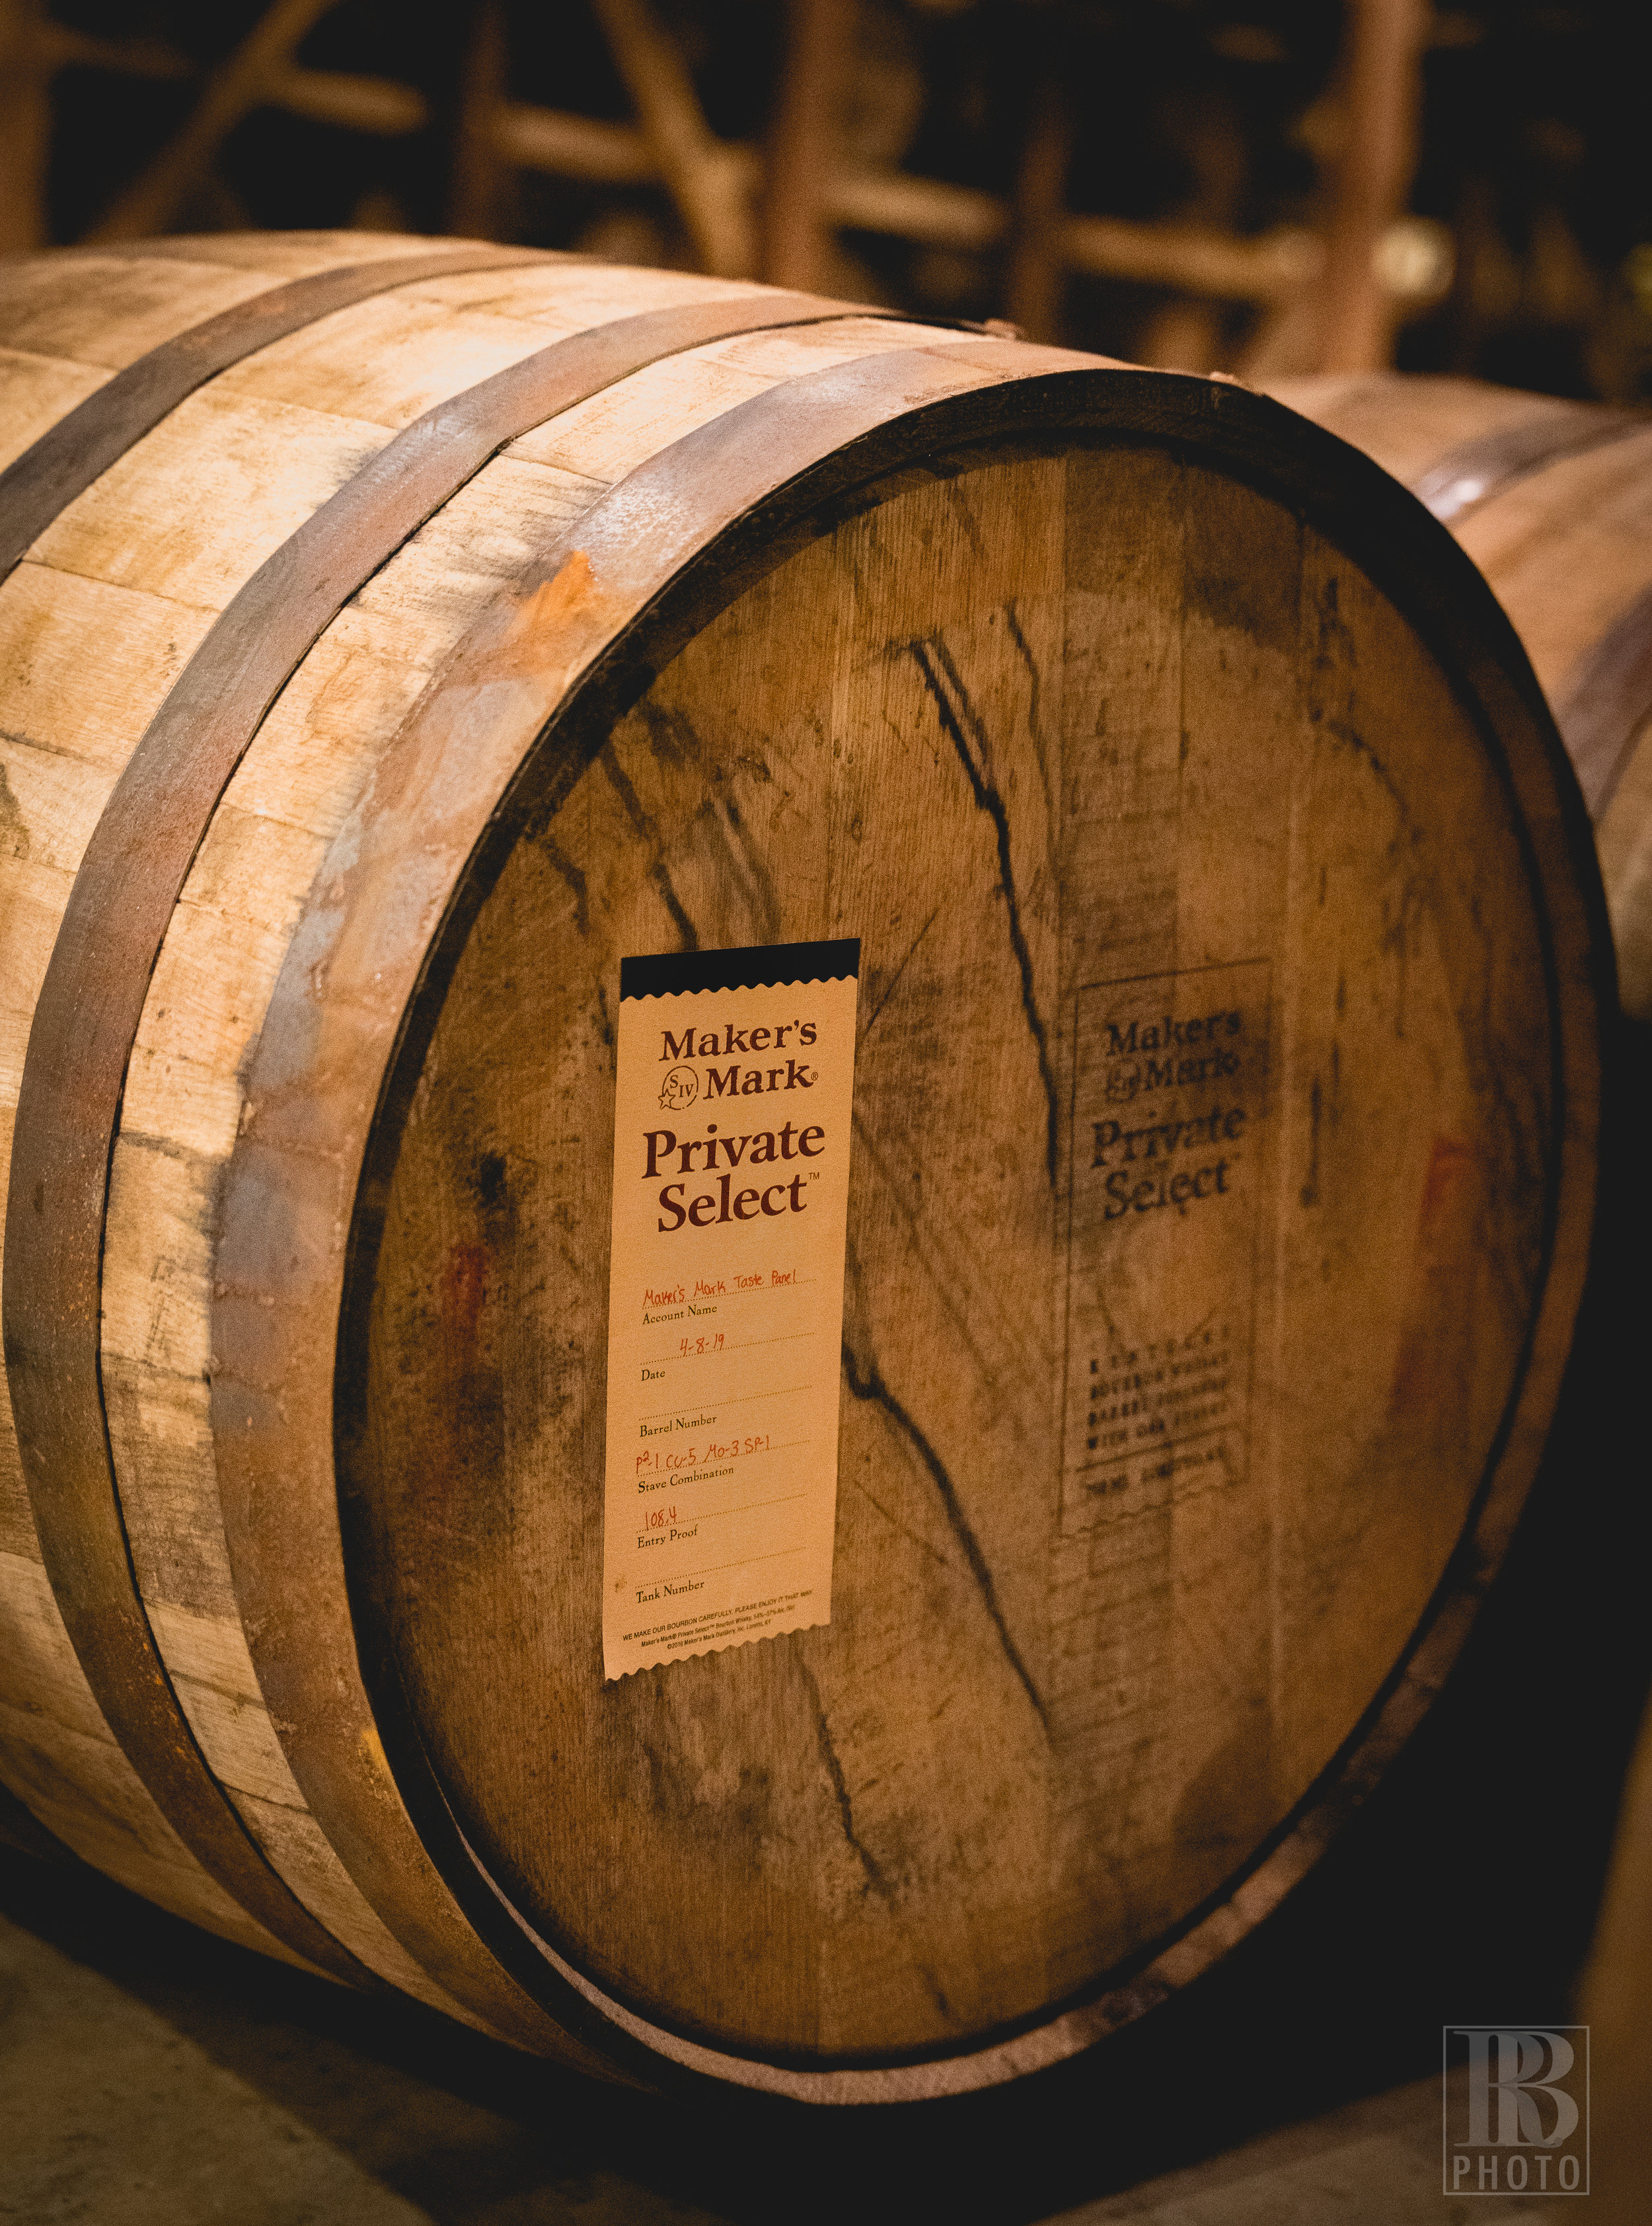 For just under $16K you can pick the oak to age your own barrel of Maker's. It gets you 240 bottles of Maker's Select, so it's totally worth it.